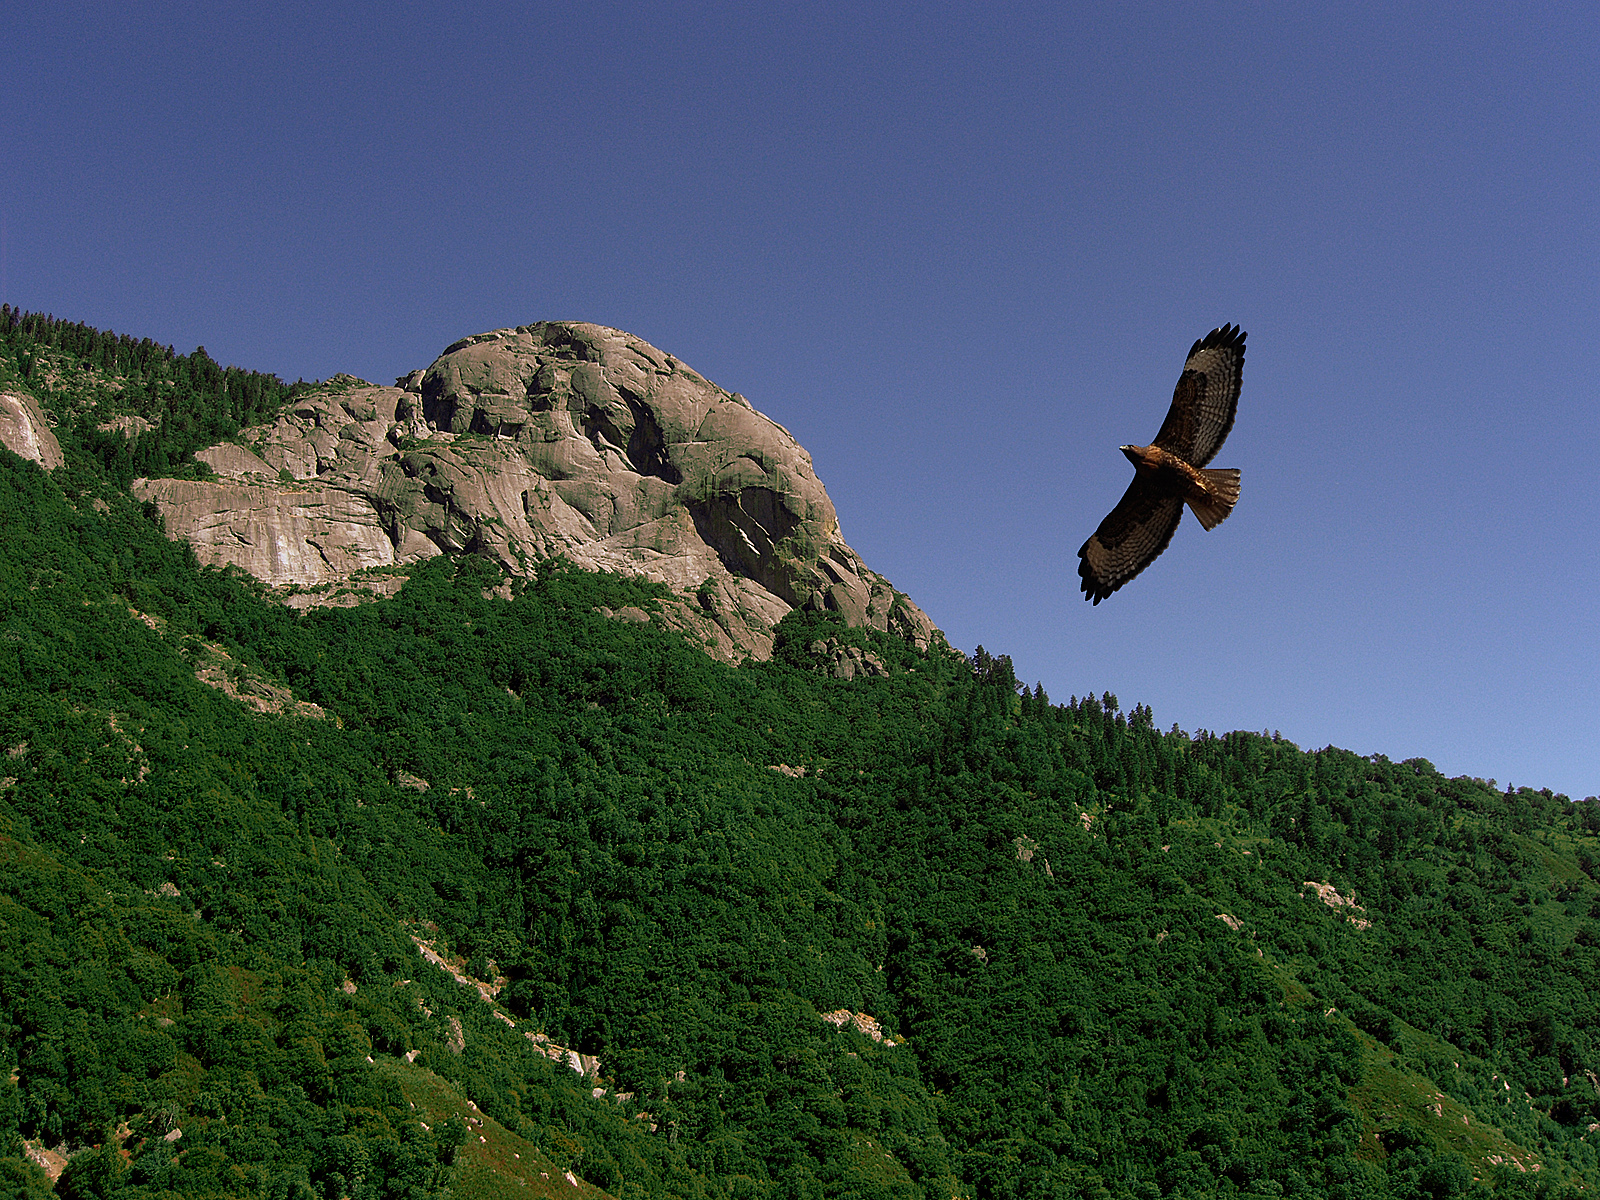 Flight of the hawk photo